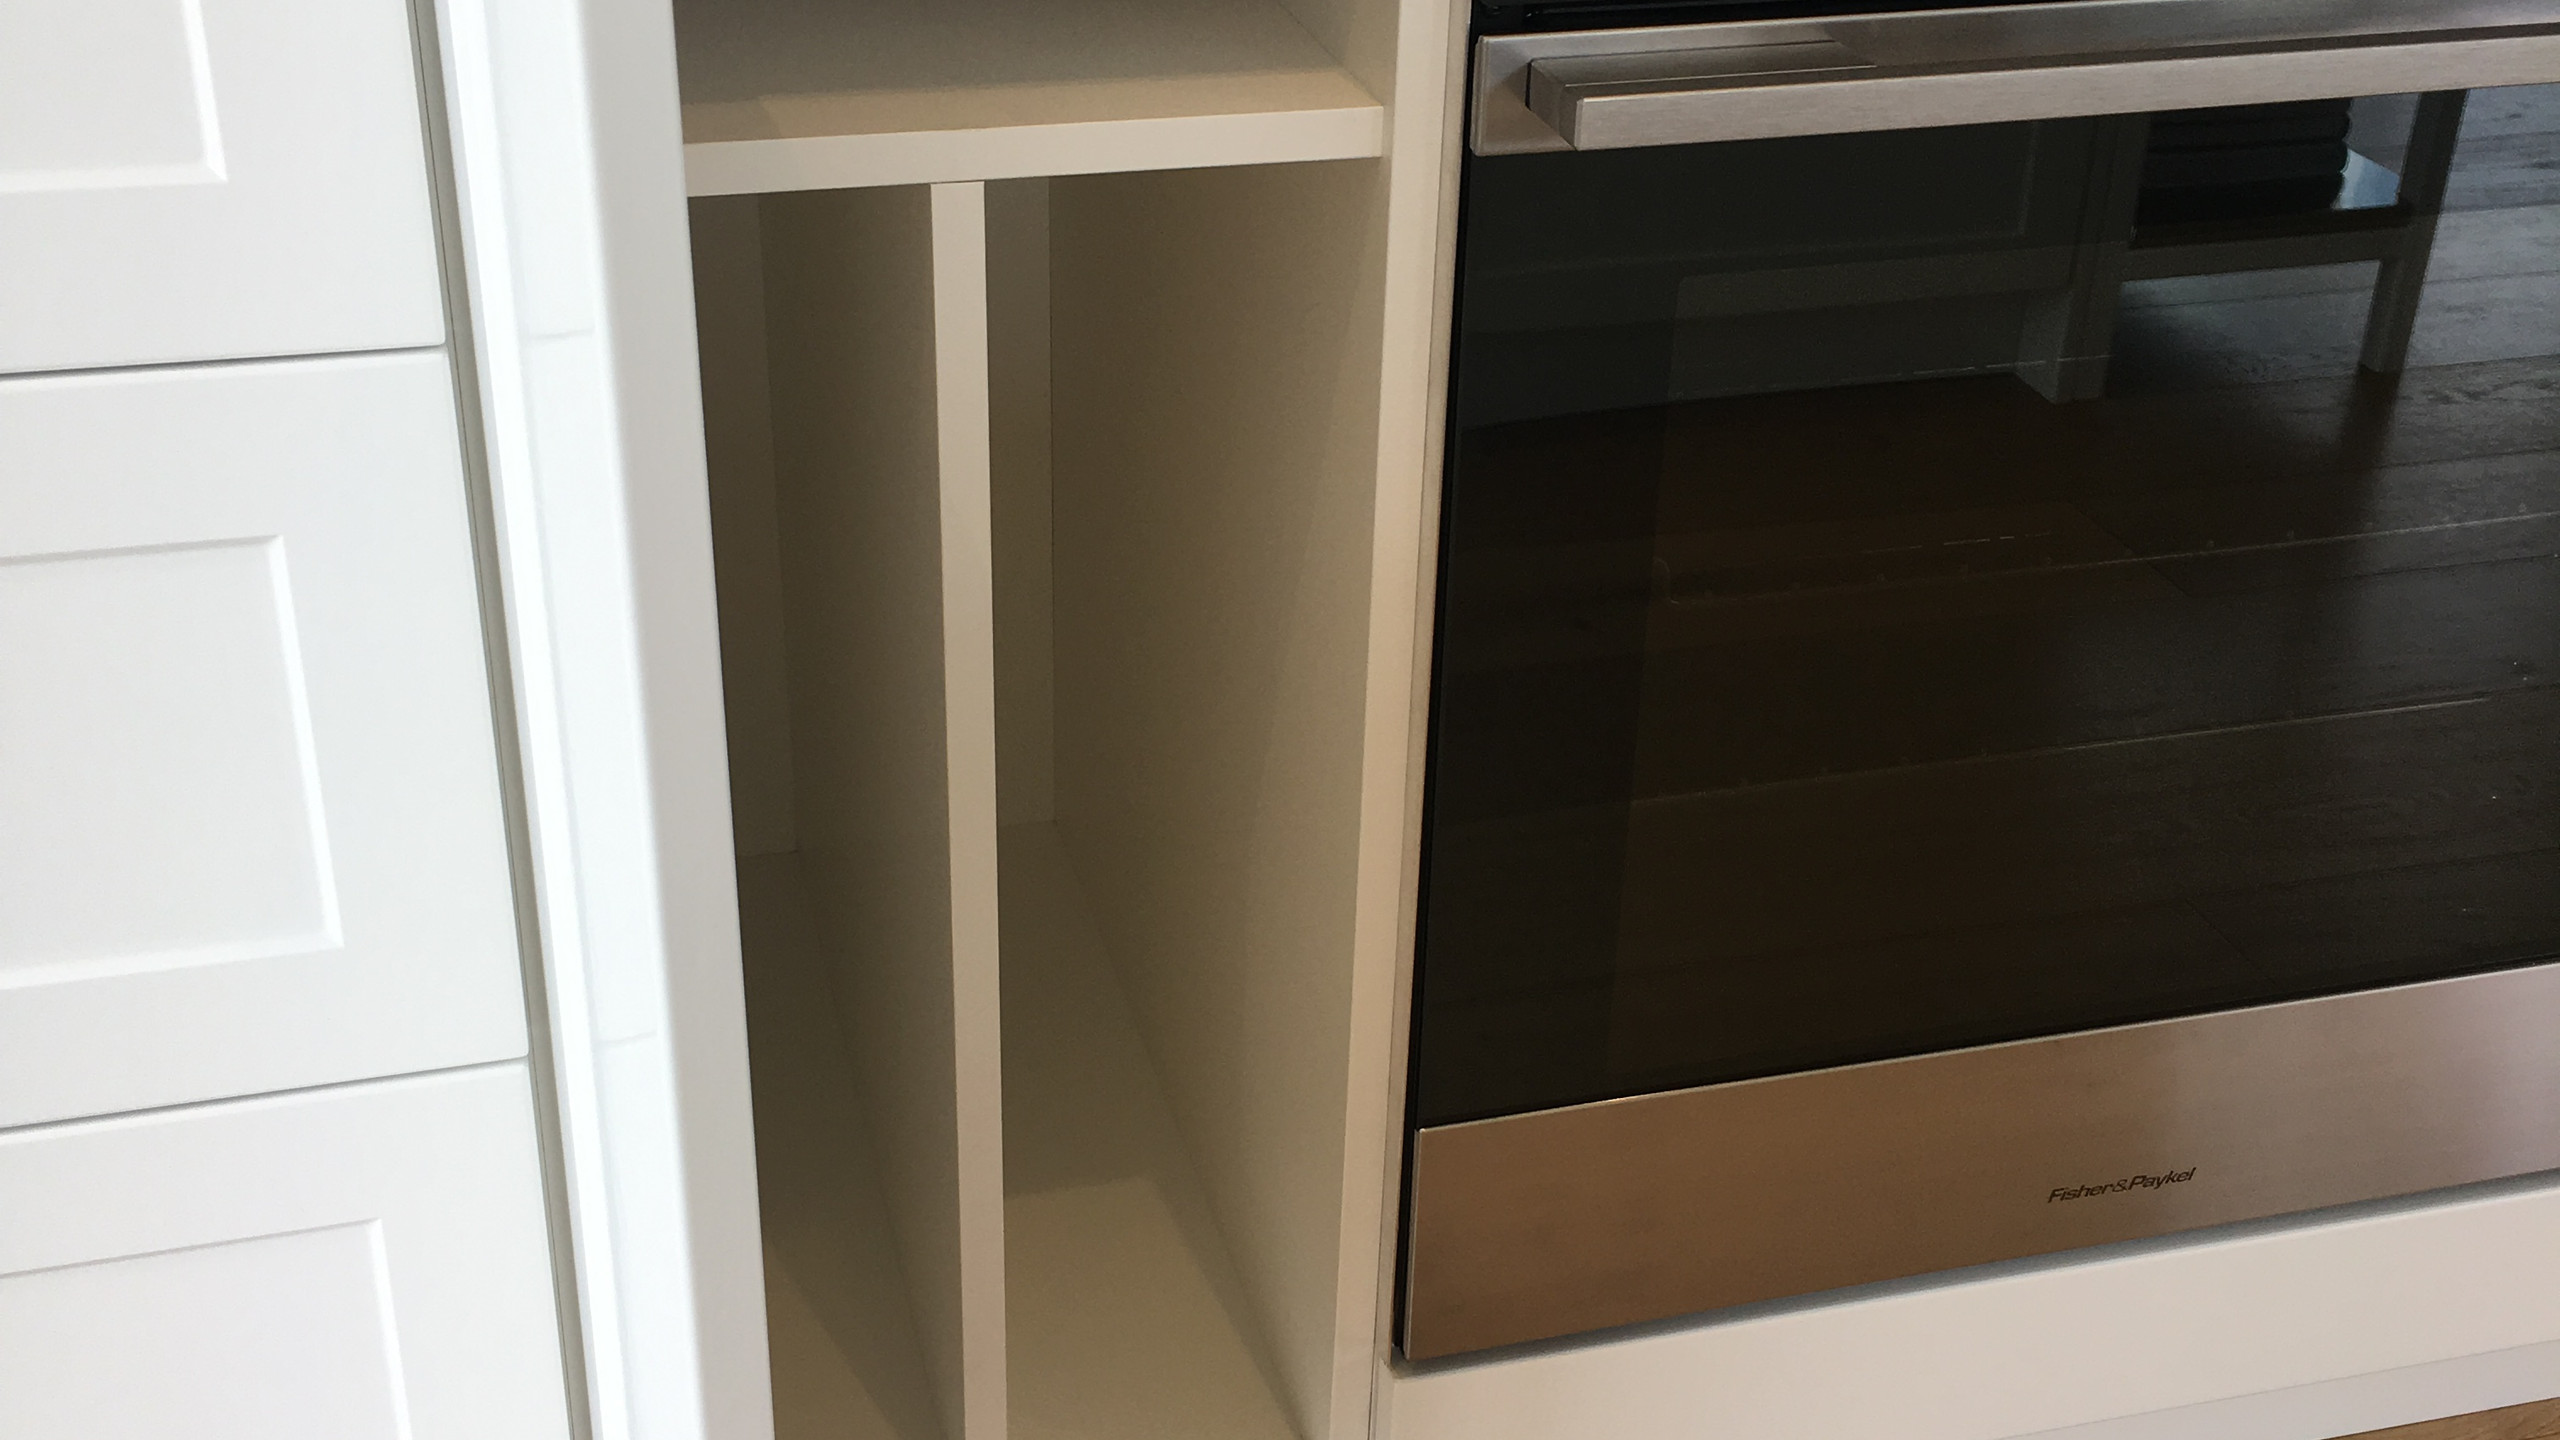 Located just next the oven to store those additional oven trays